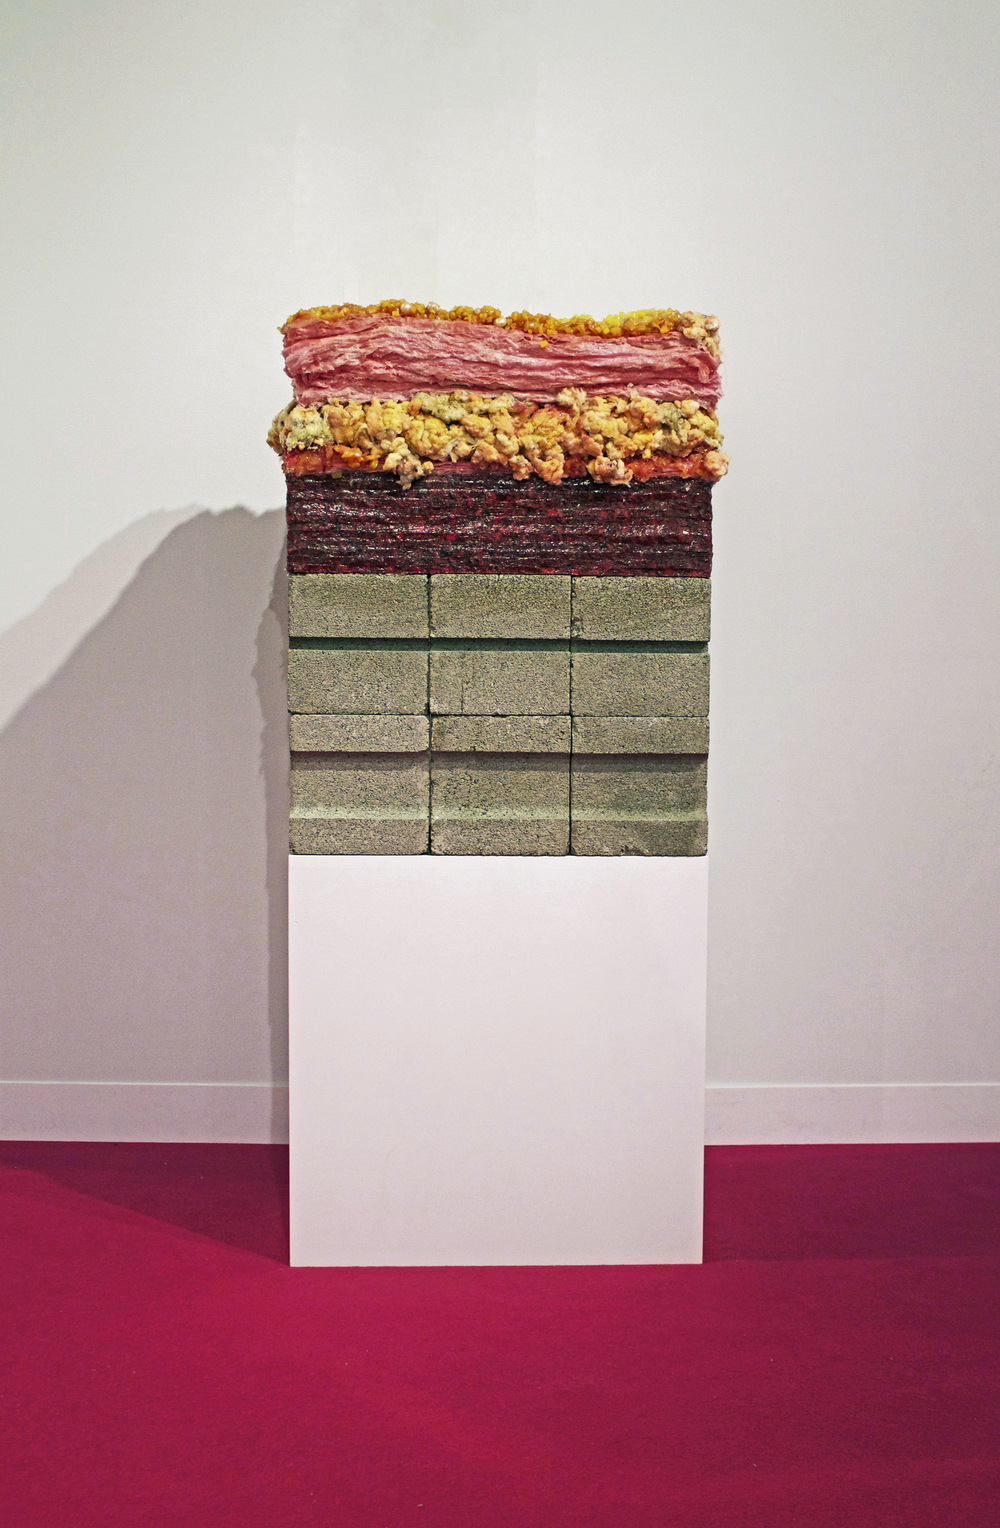 Layers    Silicone, Polyester Fiber, Cinderblock, Carpet Padding, Fiberglass insulation    15x23x54    2016